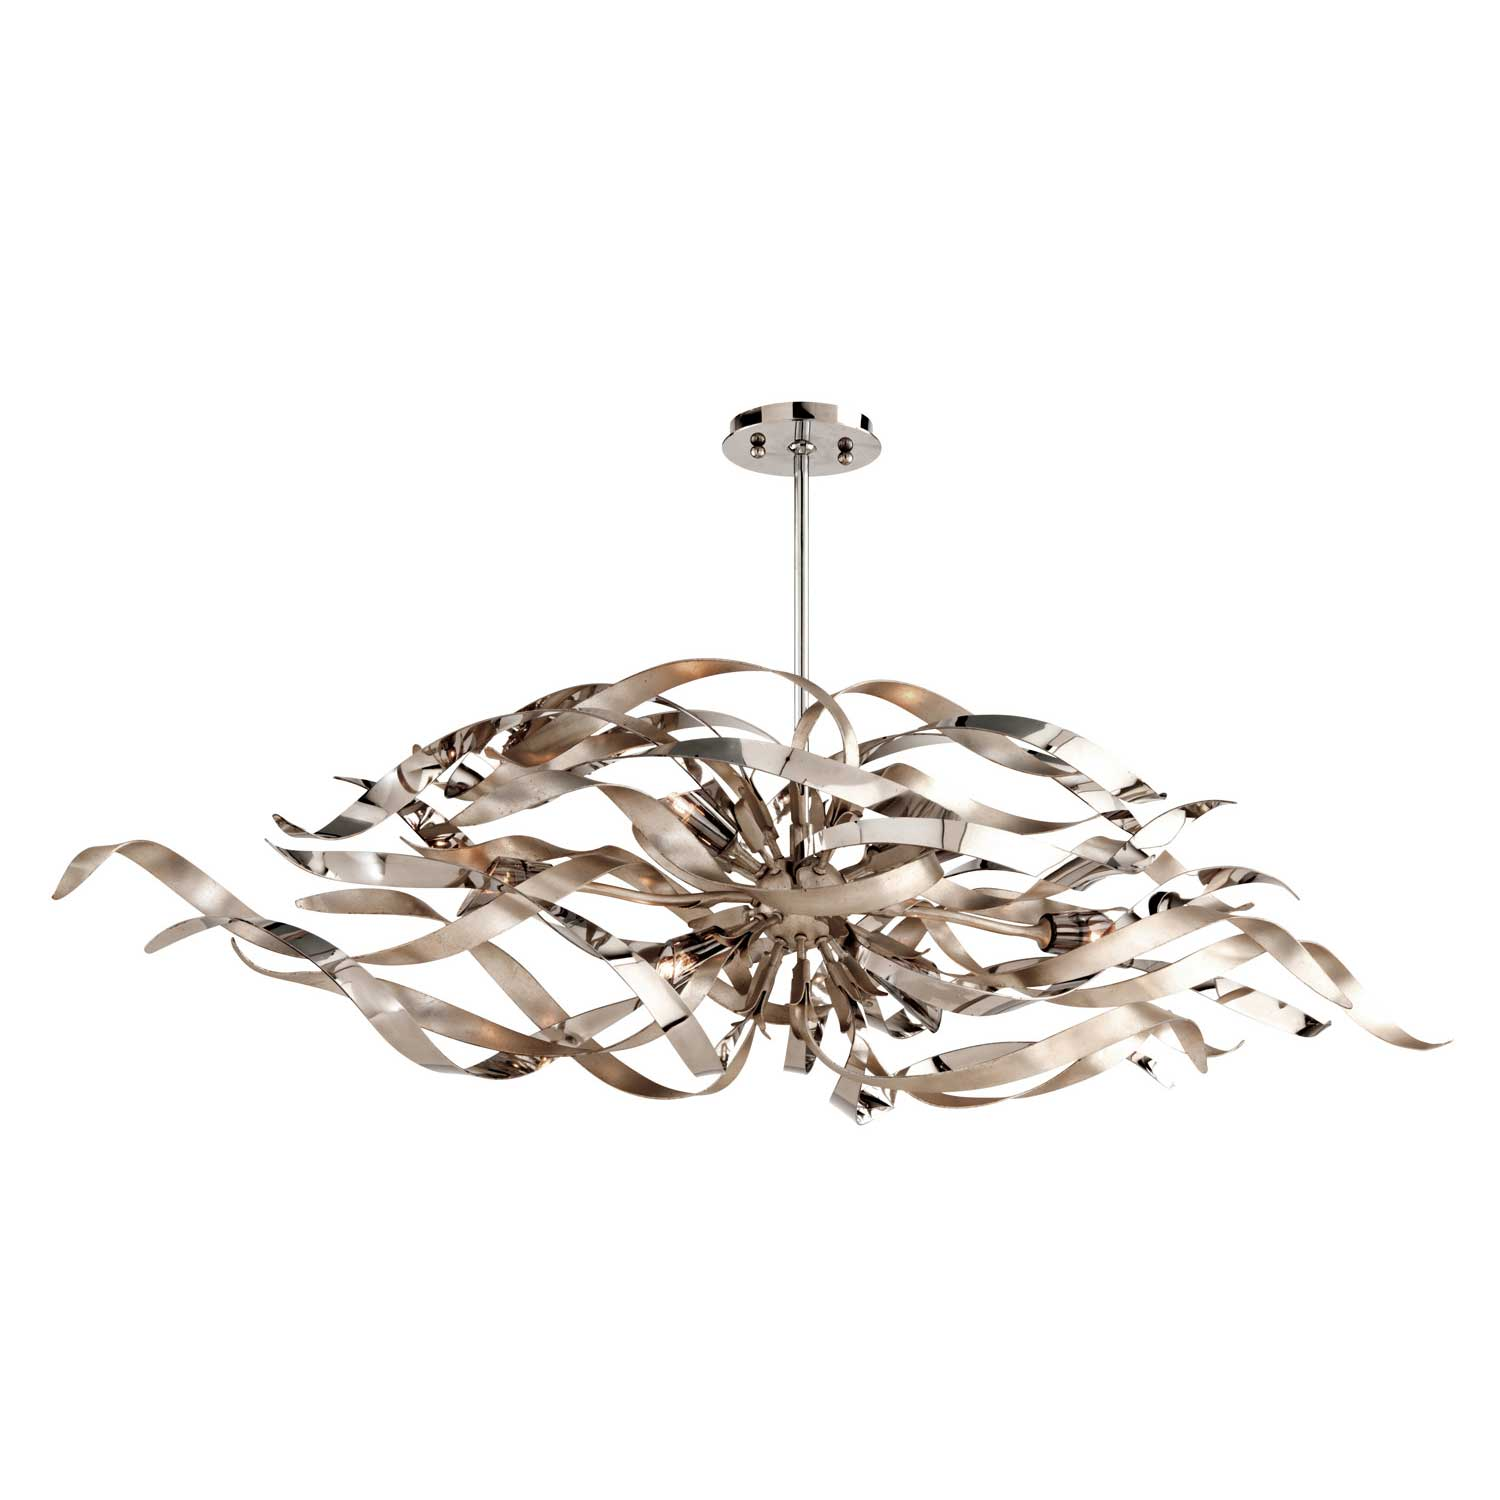 Graffiti Linear Chandelier By Corbett Lighting 154 56